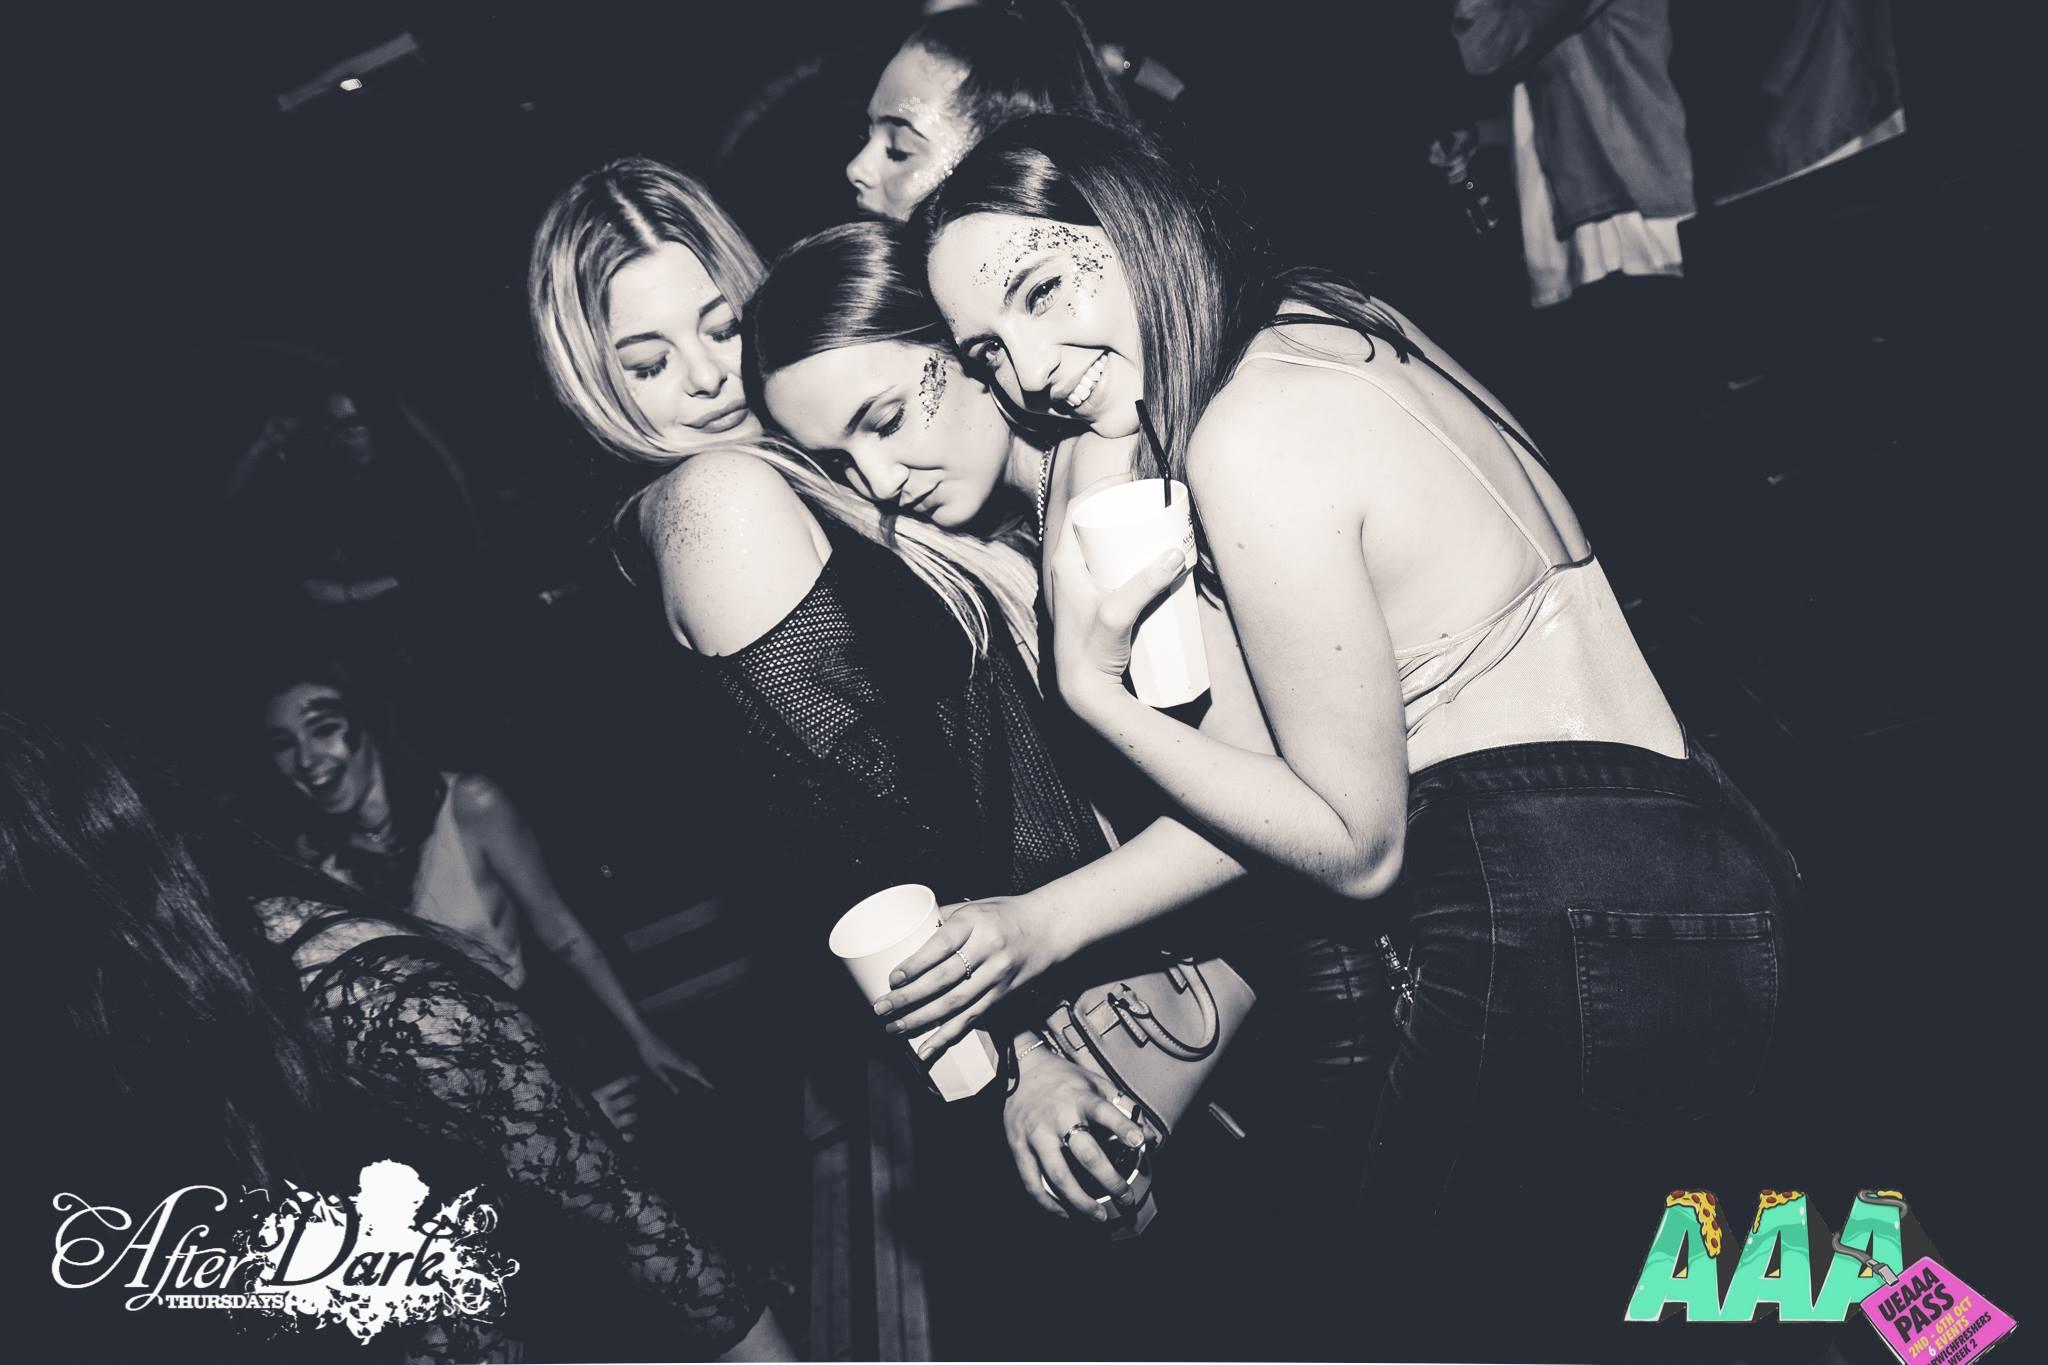 10/10 effort for showing up ladies even if you do need a nap on the dance floor